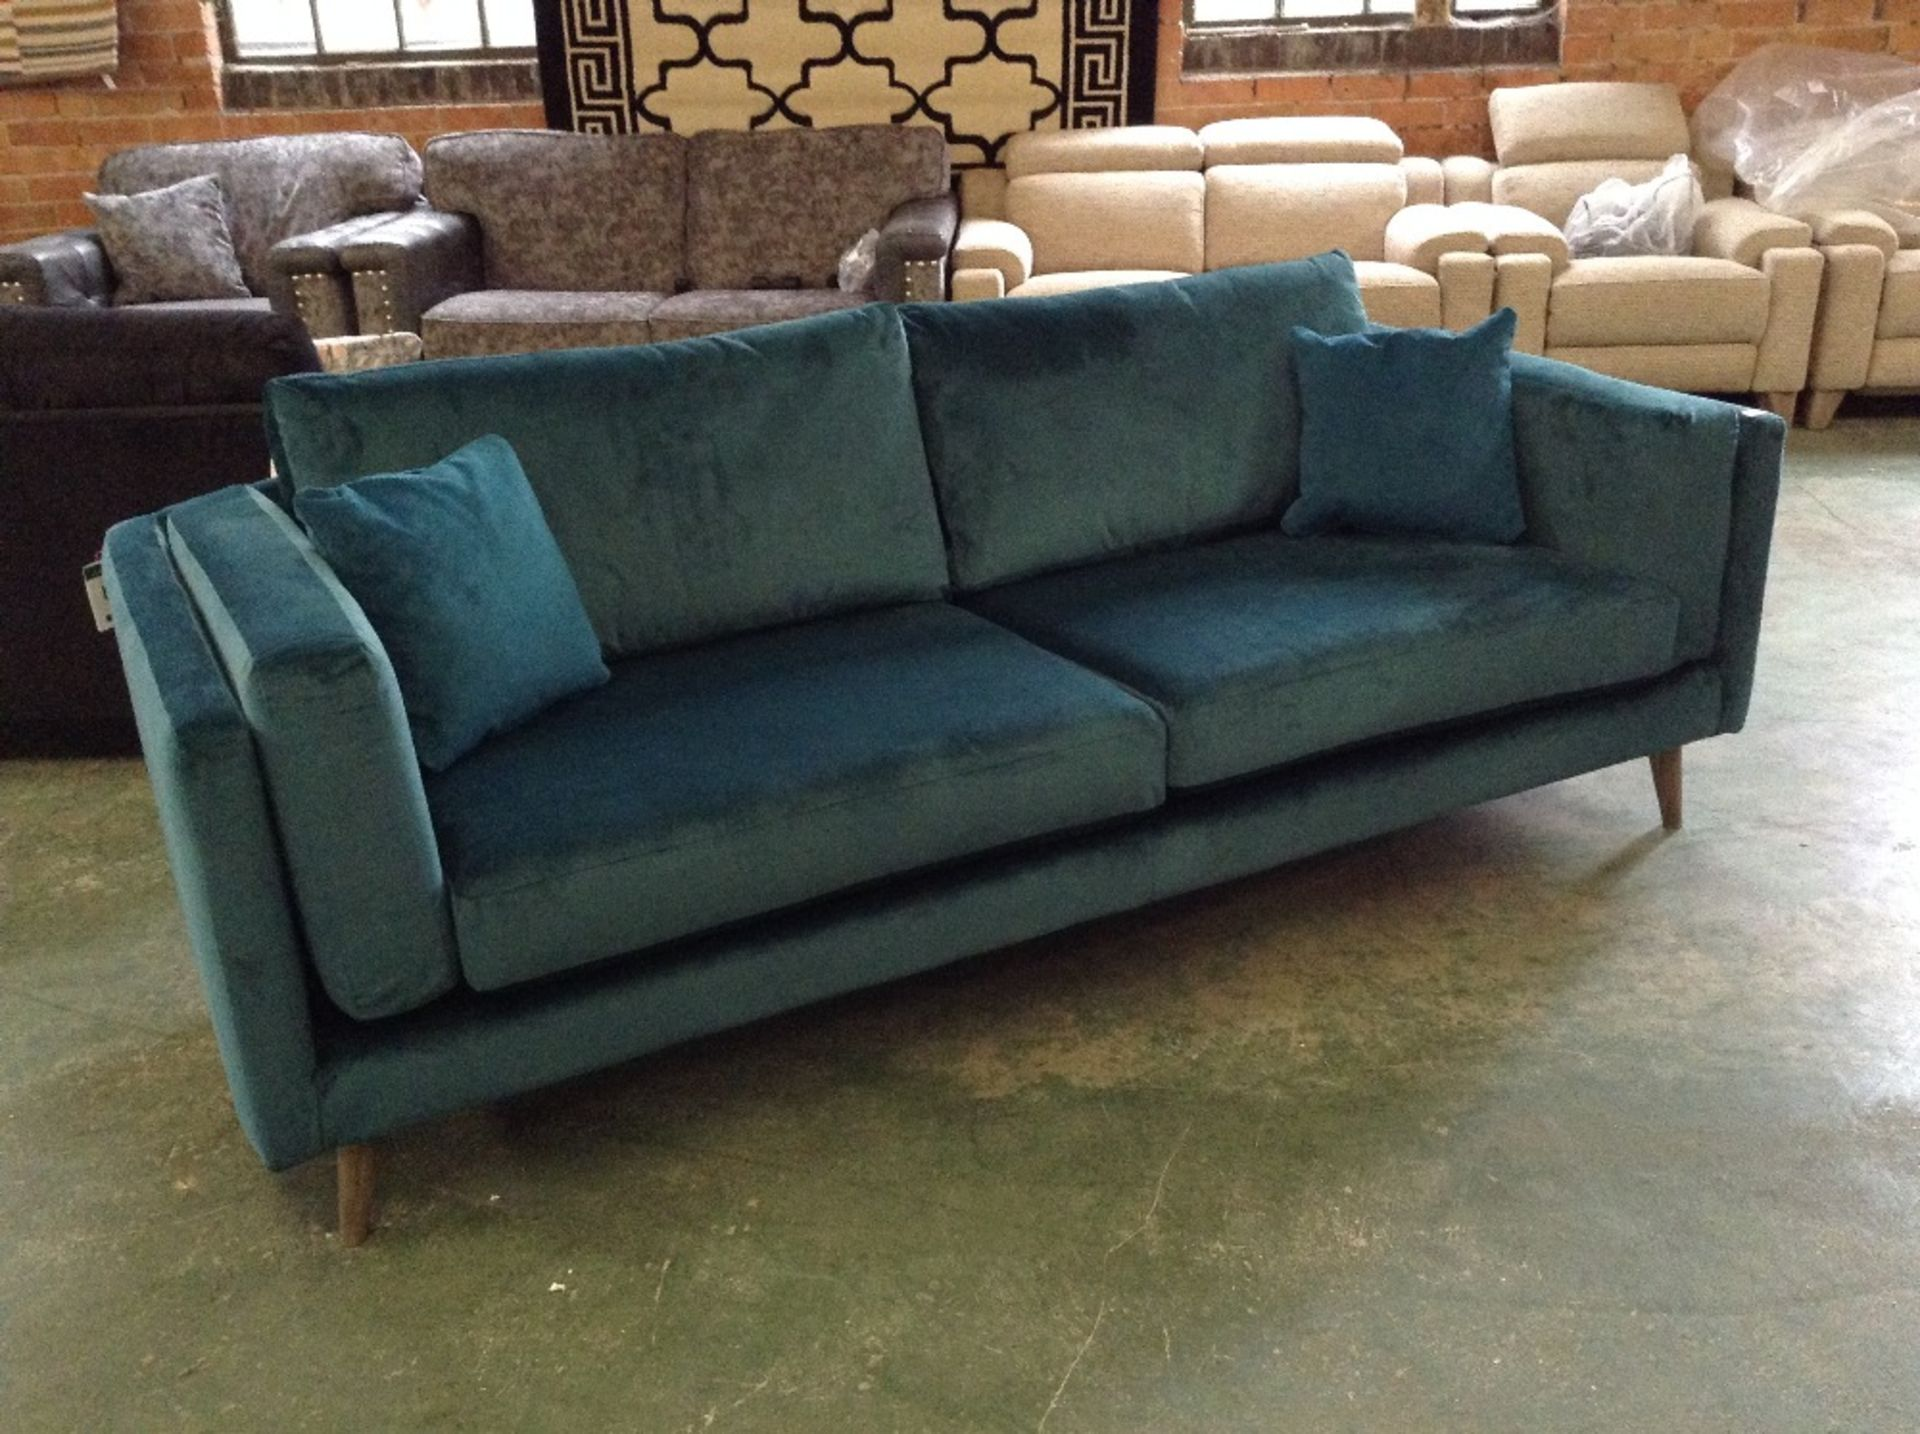 Lot 21 - TEAL 3 SEATER SOFA